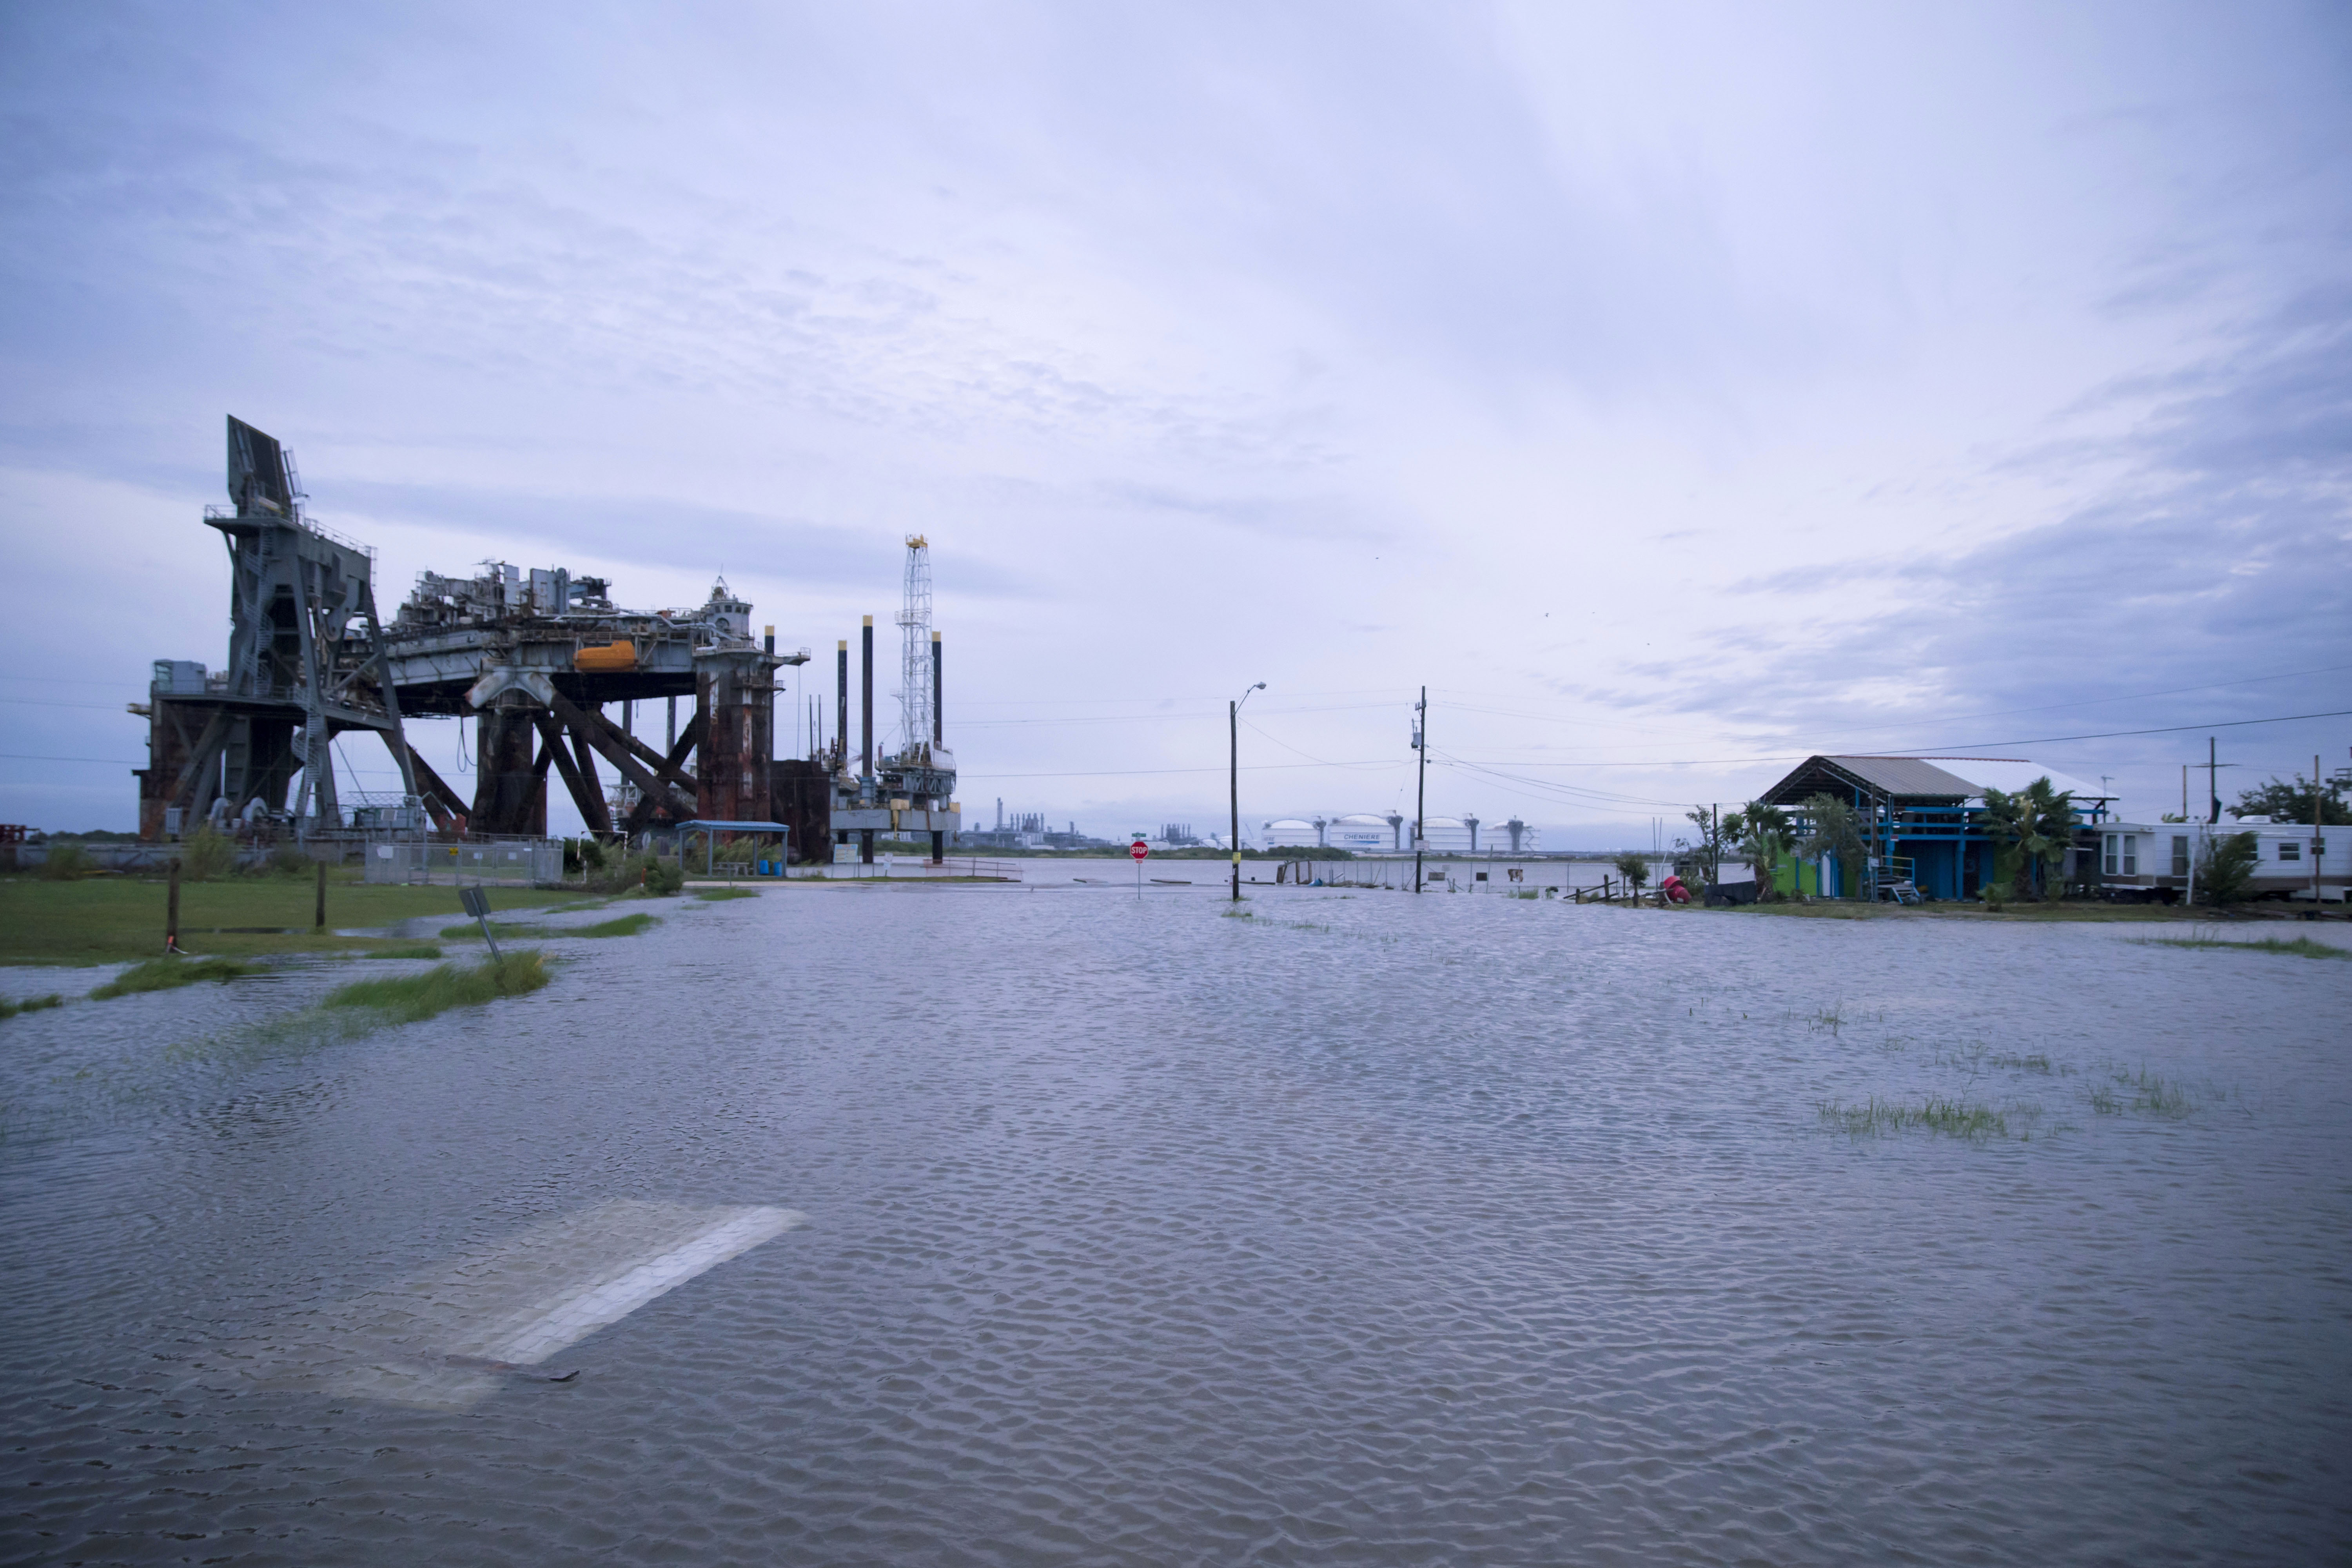 An area in Sabine Pass, Texas, is flooded during Hurricane Laura on August 27.